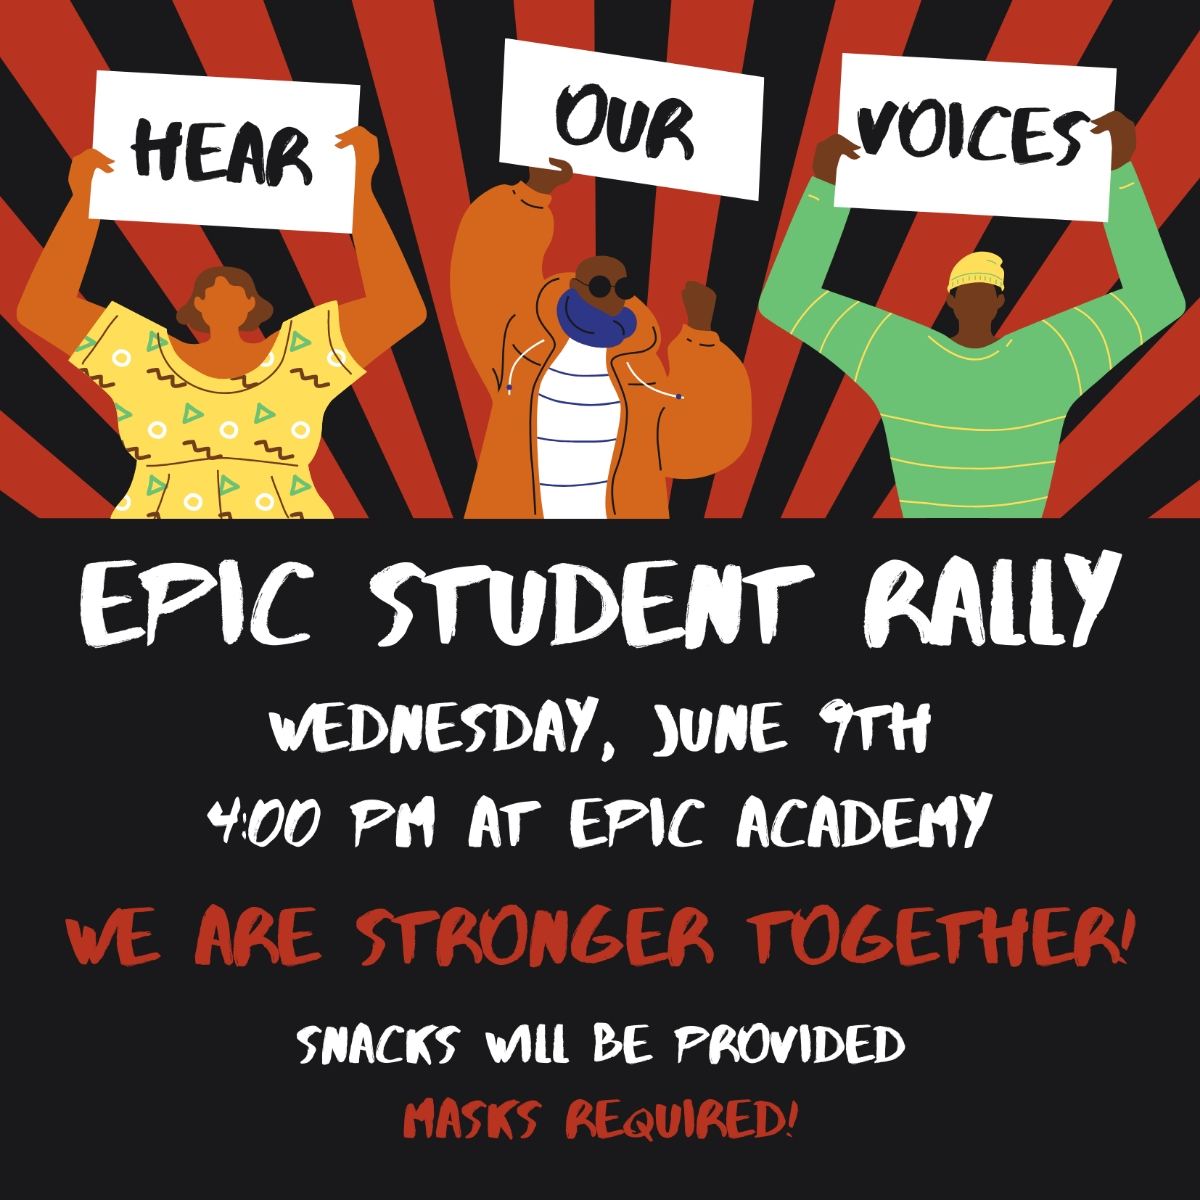 Epic charter students rally today for fired teachers